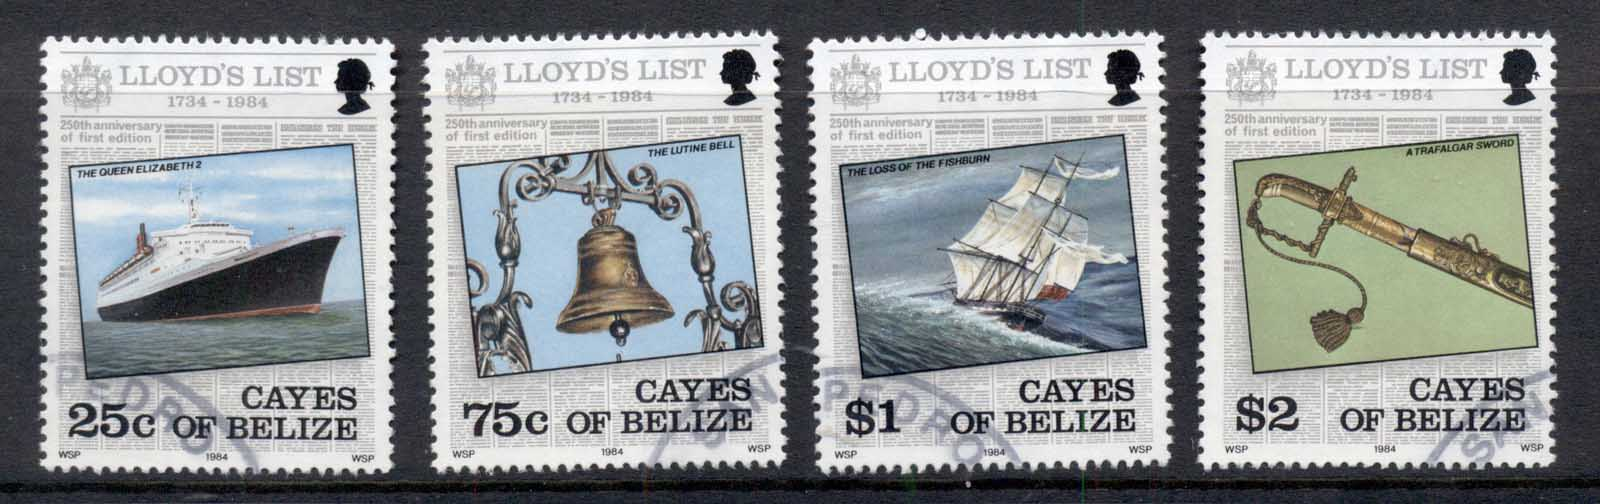 Cayes of Belize 1984 Lloyd's List Ships FU